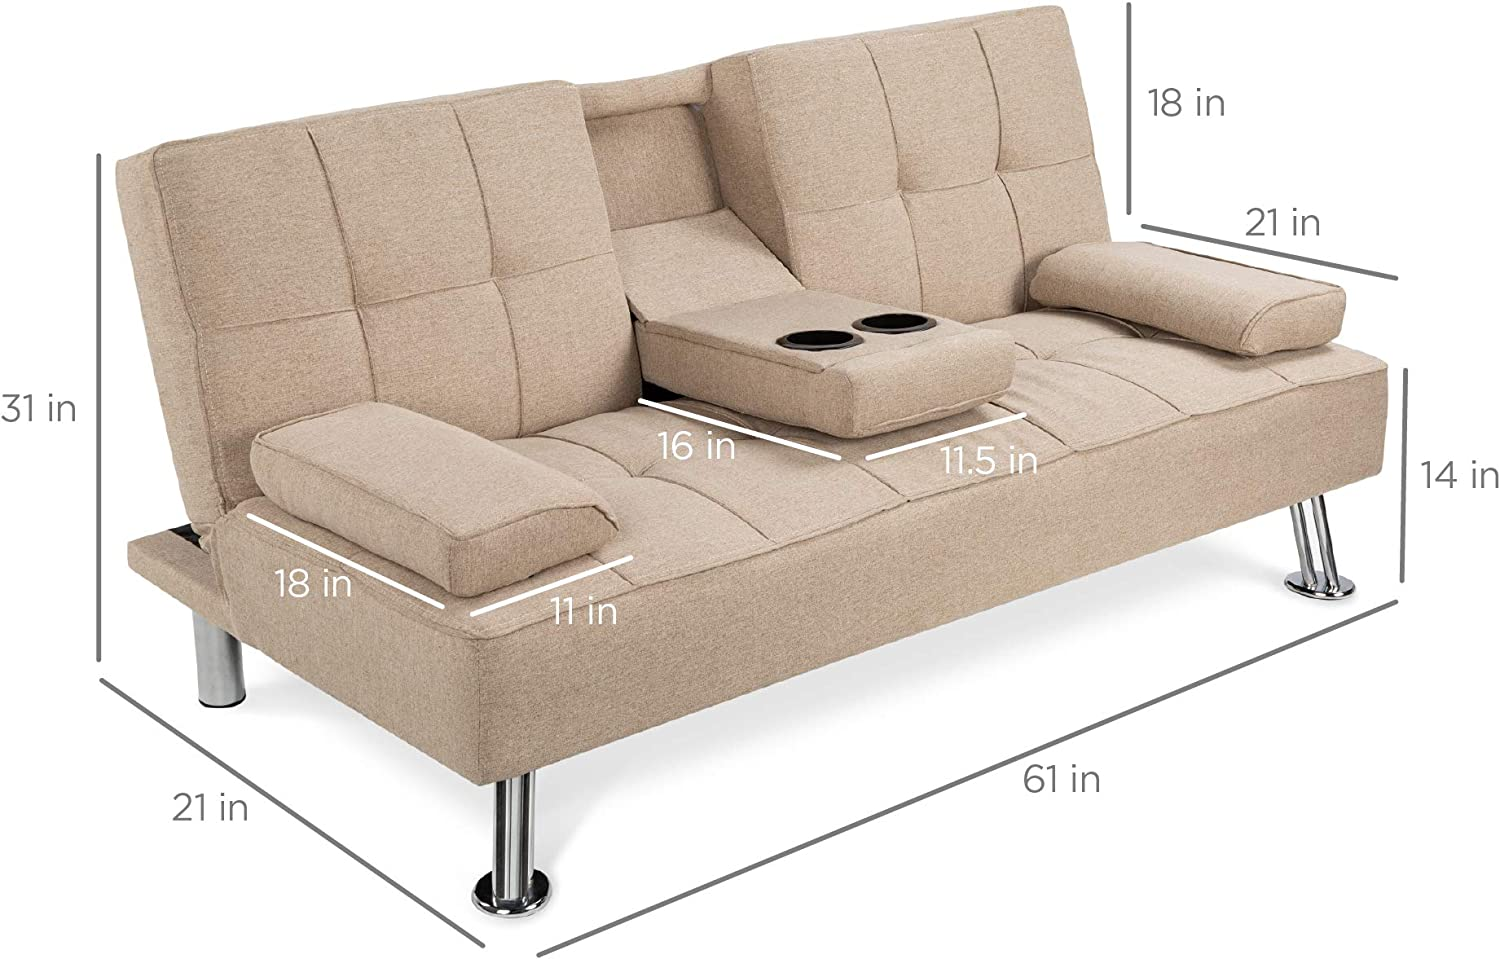 2 Cupholders Best Choice Products Modern Linen Convertible Futon Sofa Bed w//Metal Legs Beige